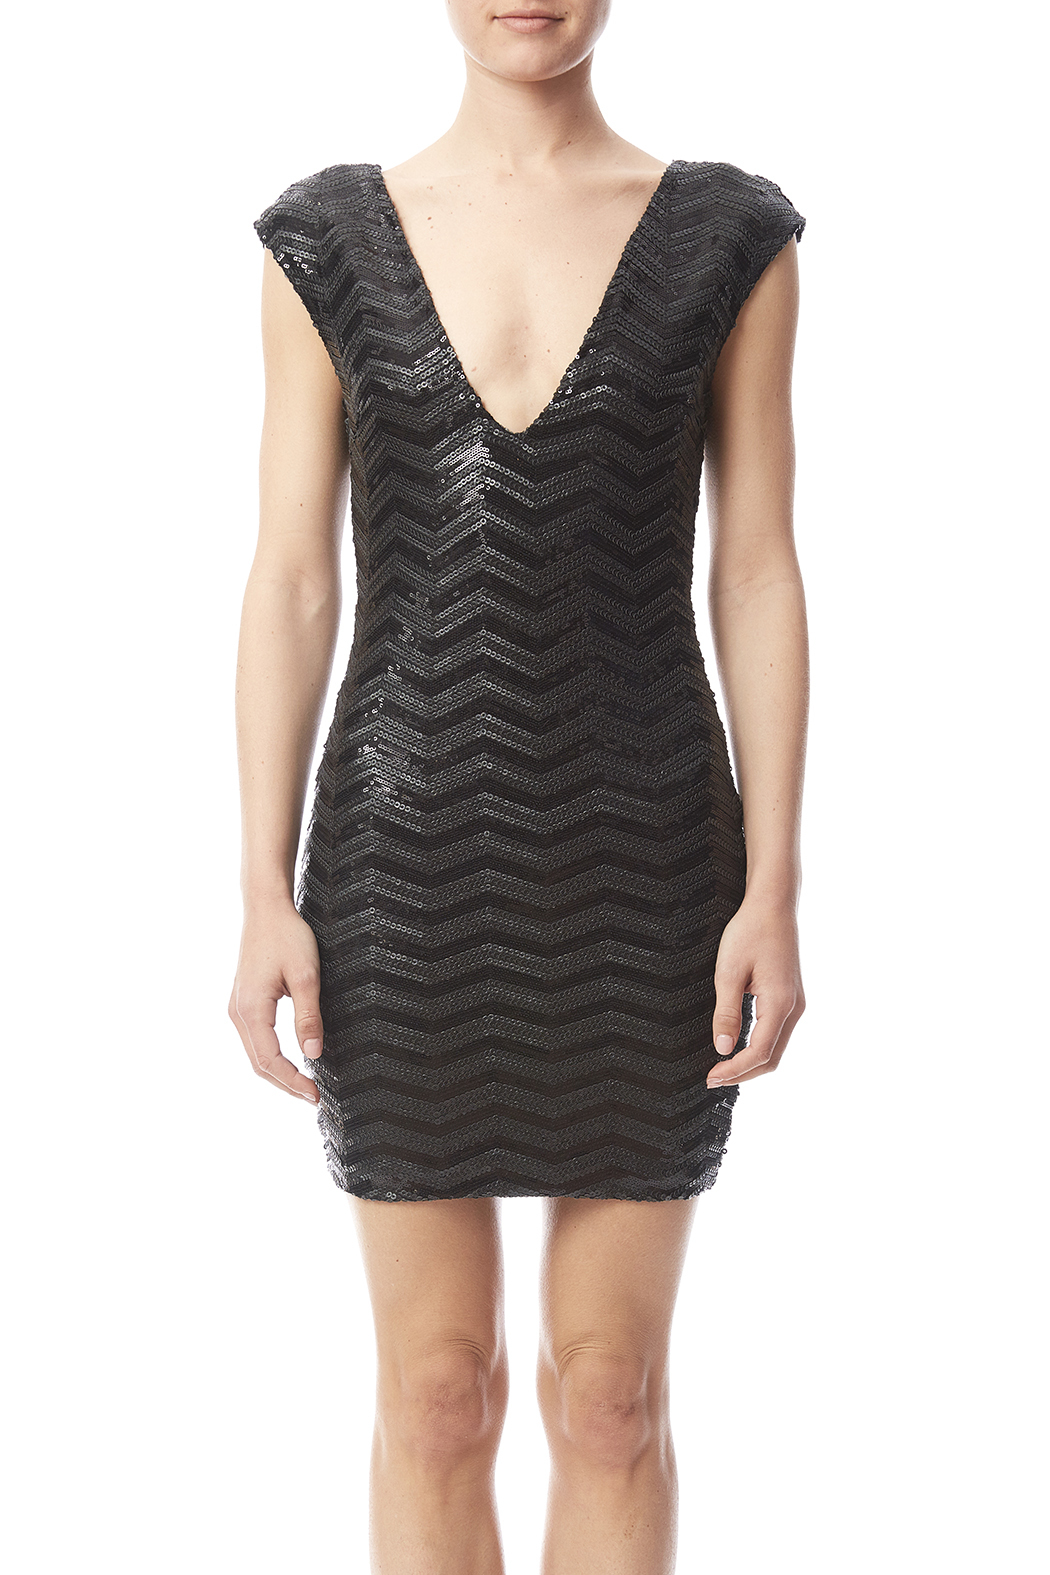 Haoduoyi Black Sequin Dress - Side Cropped Image